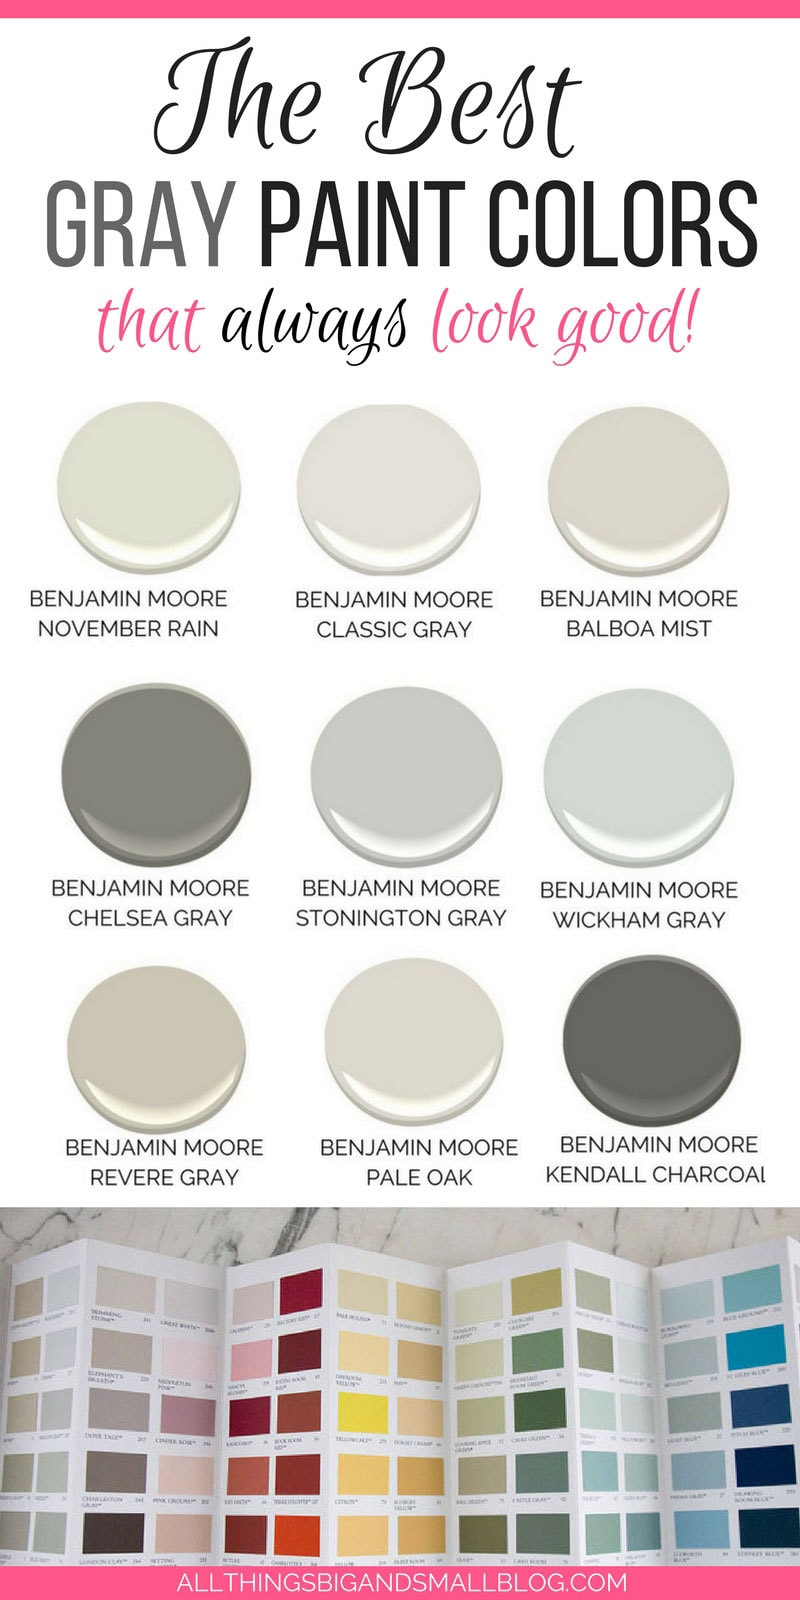 The Best Gray Paint Colors Never Fail Paints November 2019